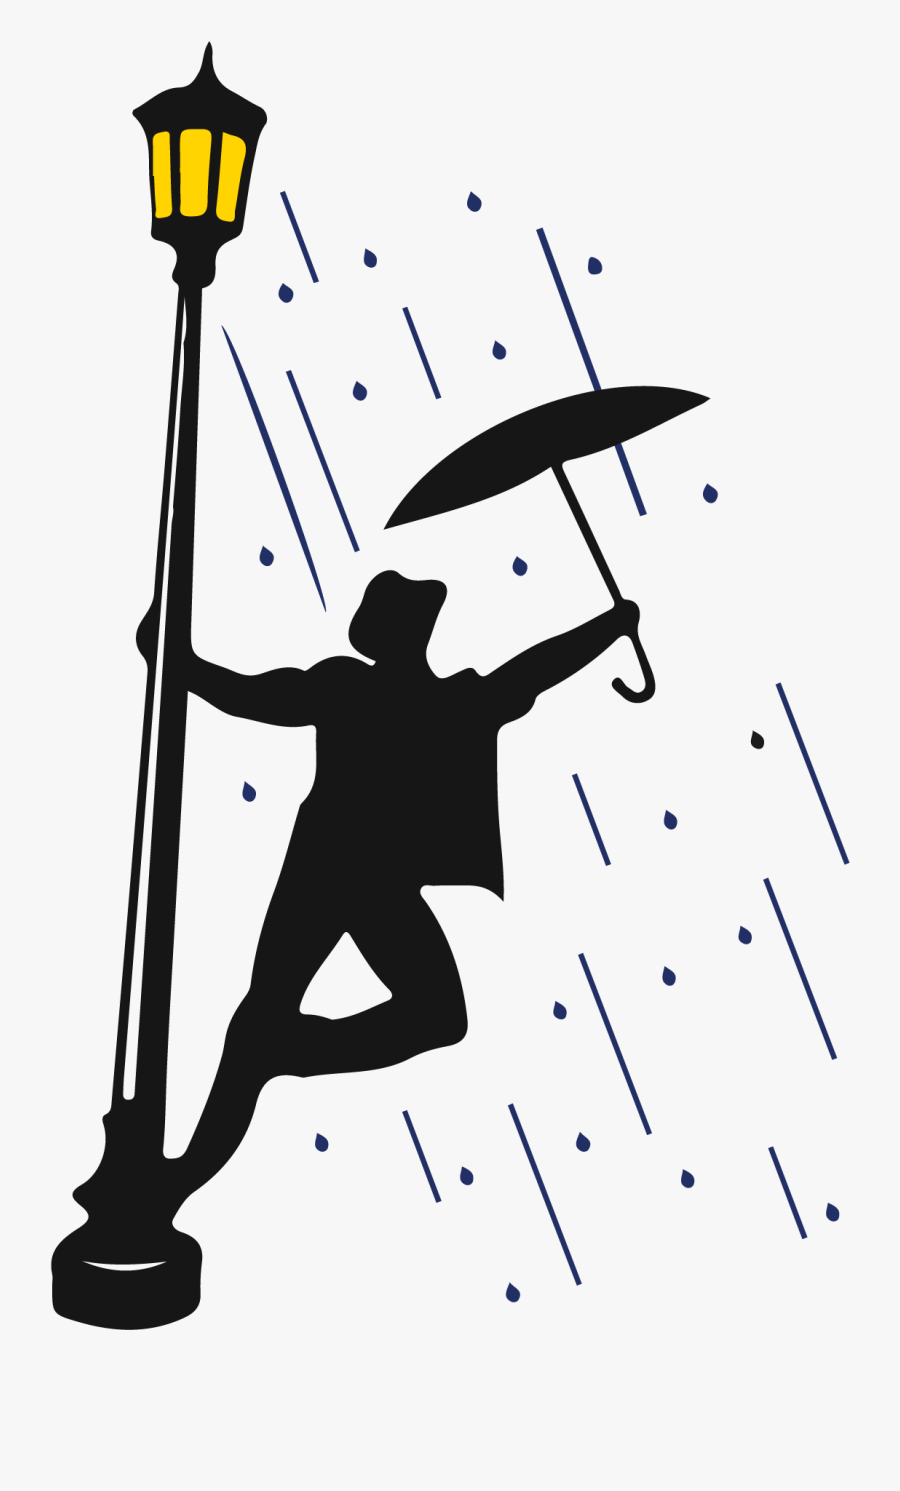 Sticker Singing In The Rain Clipart , Png Download - Singing In The Rain Title, Transparent Clipart